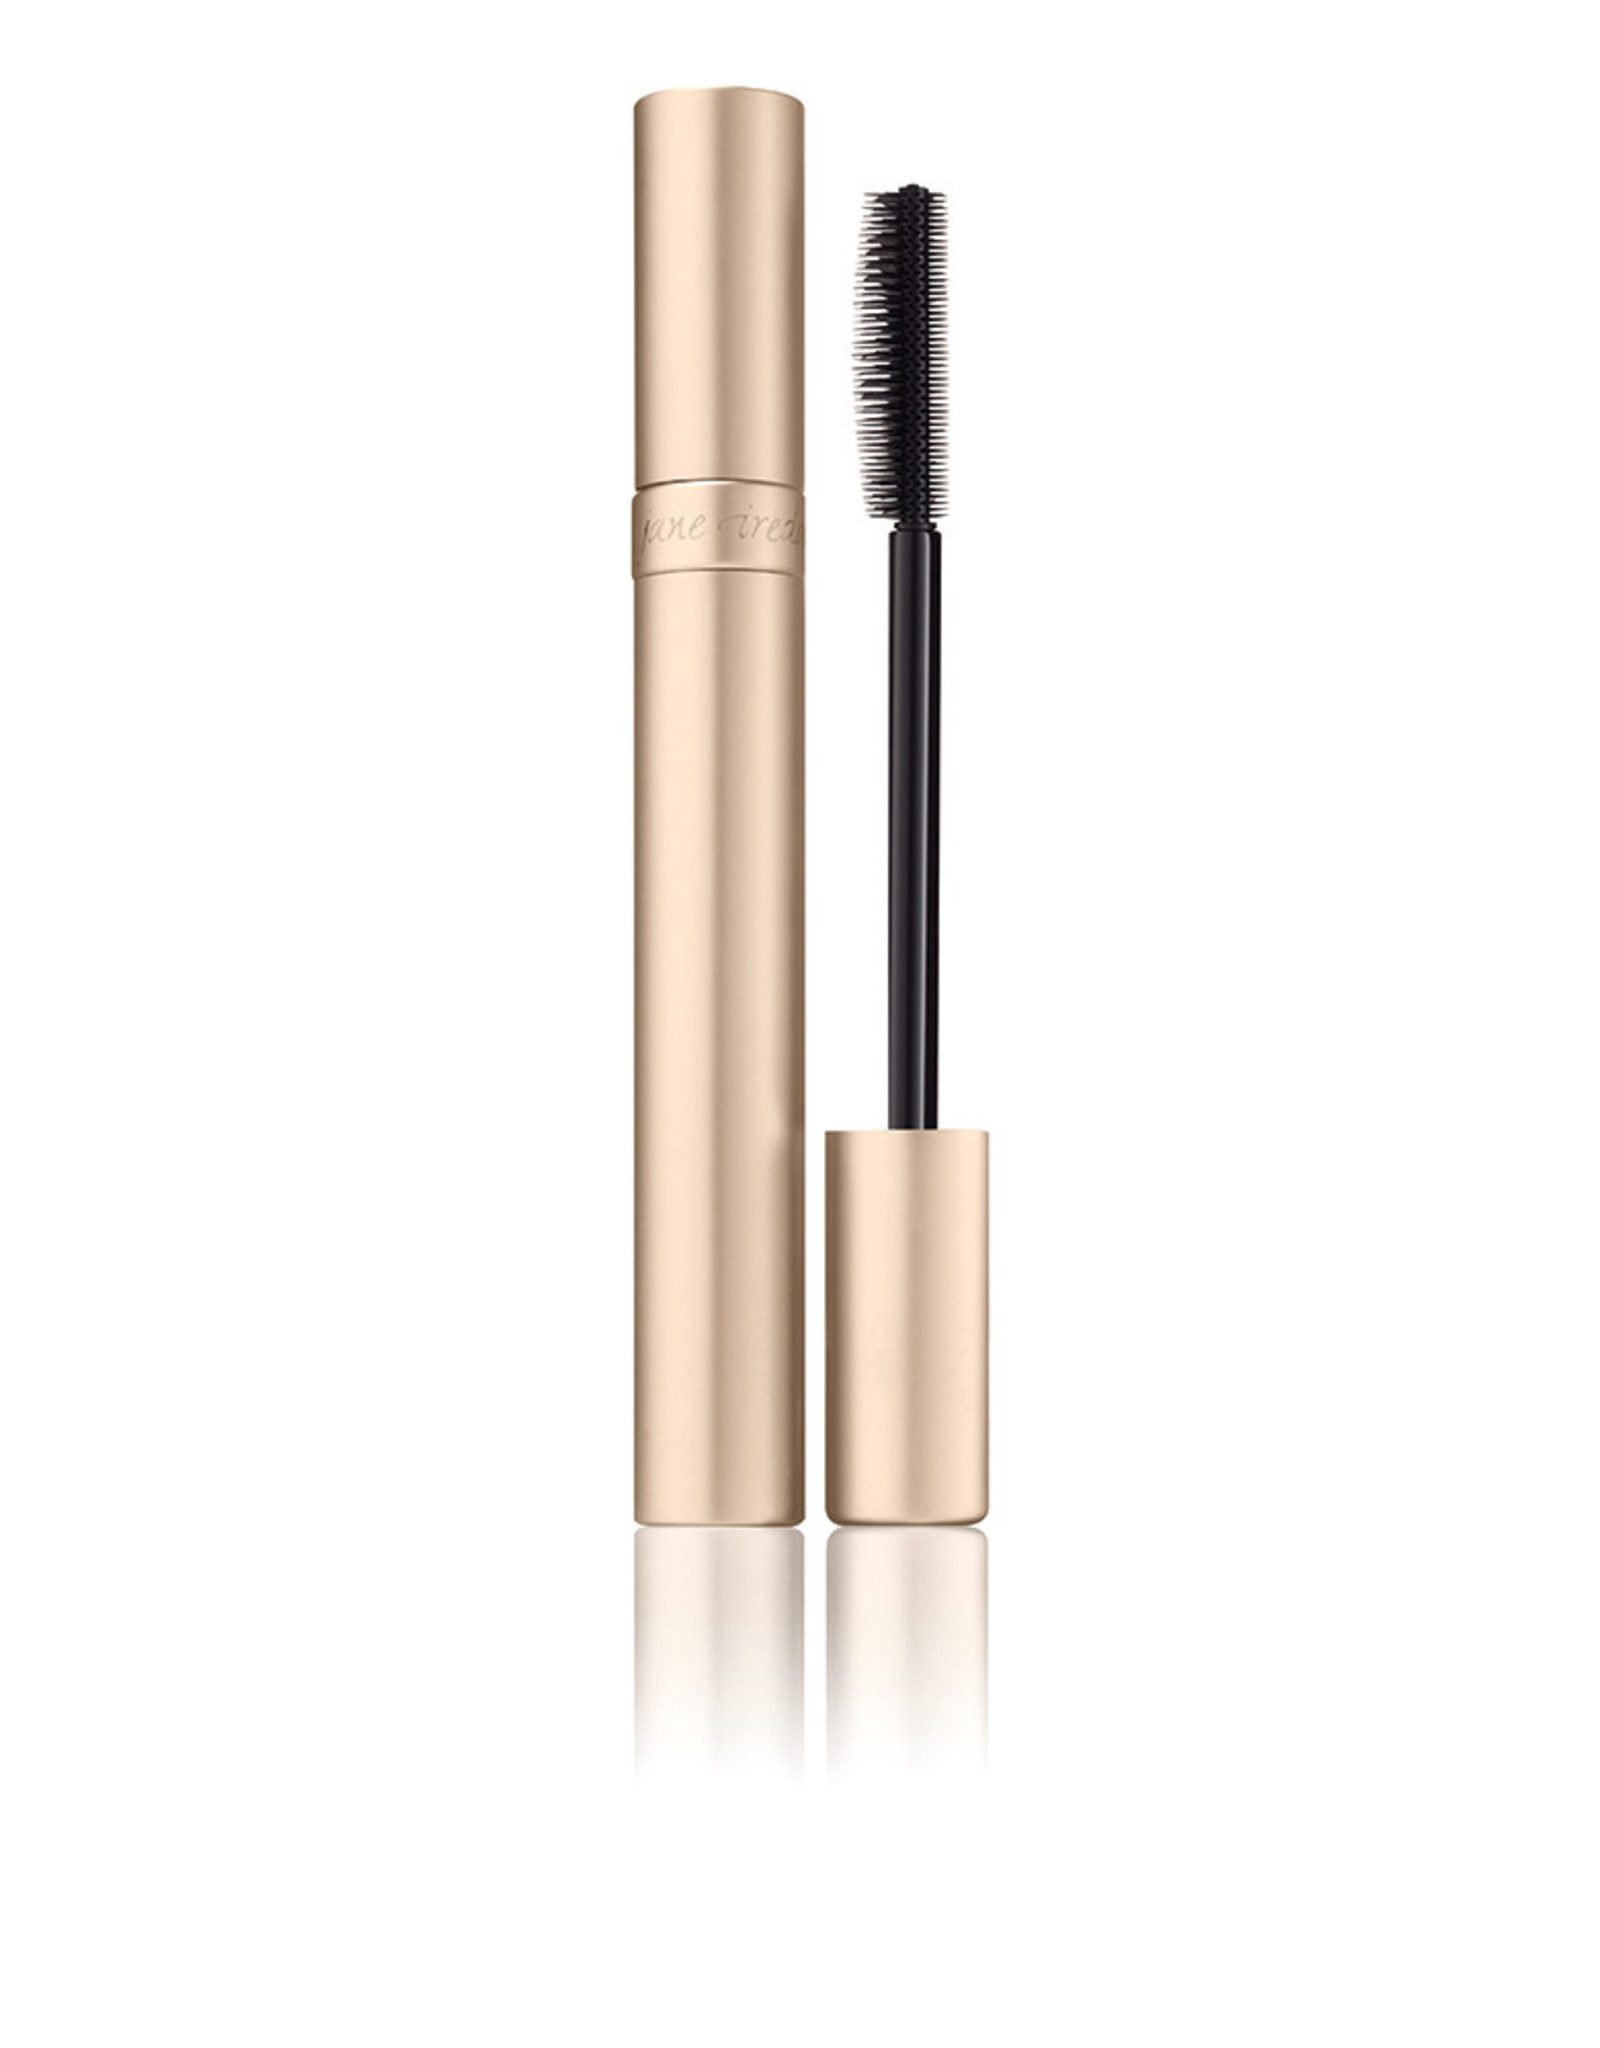 Pure lash lenghtening mascara brown/black